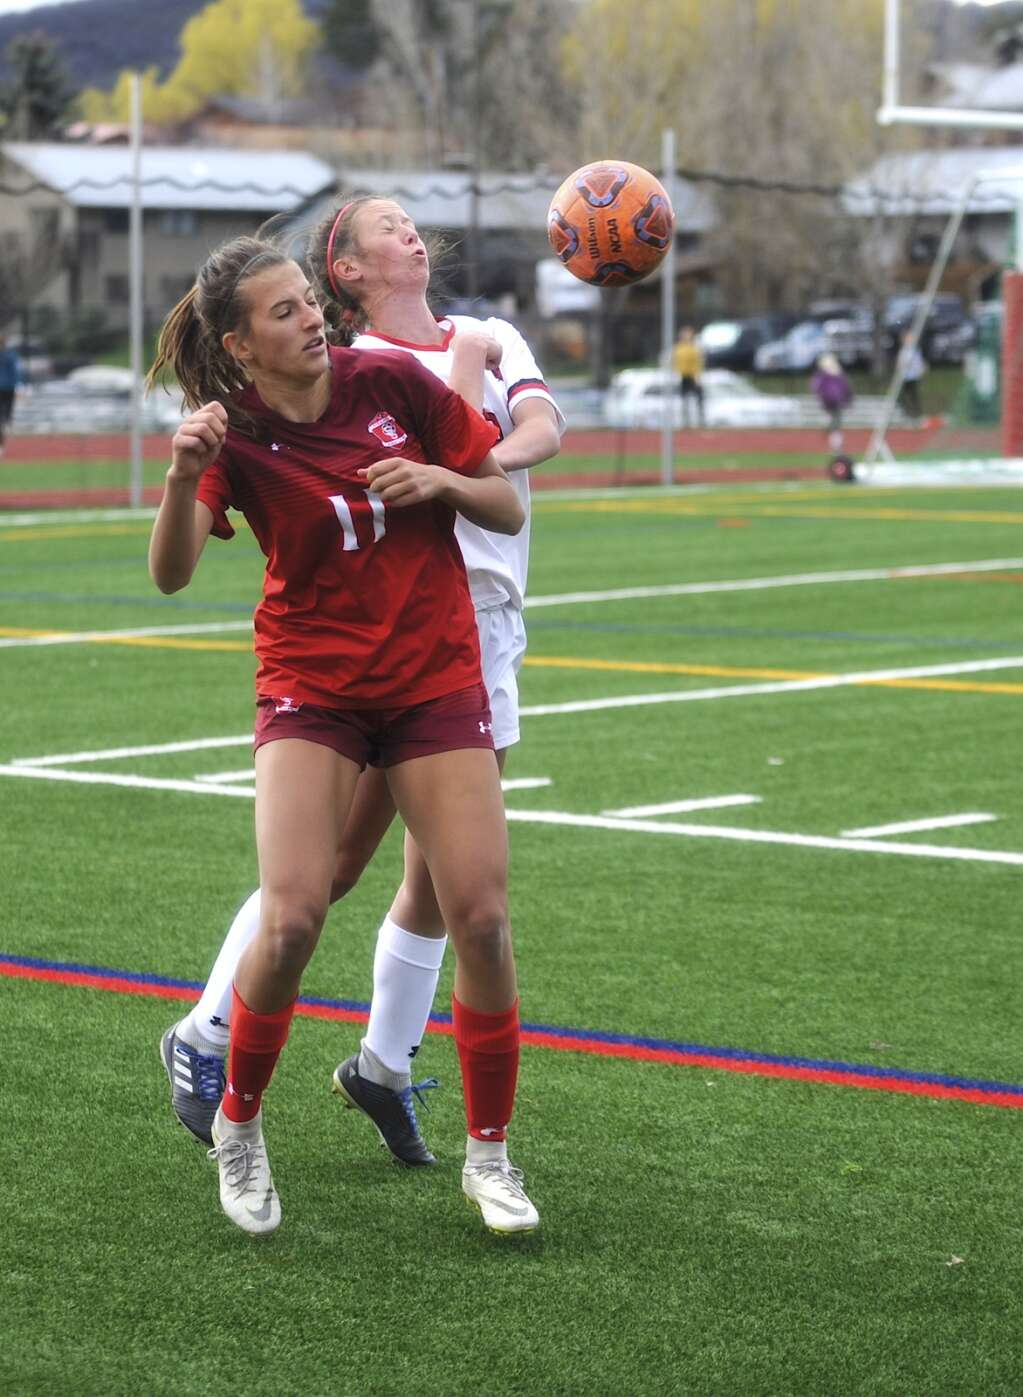 Steamboat Springs soccer player Anabel Ayad plays a throw in during a game against Glenwood Springs on Tuesday evening. (Photo by Shelby Reardon)